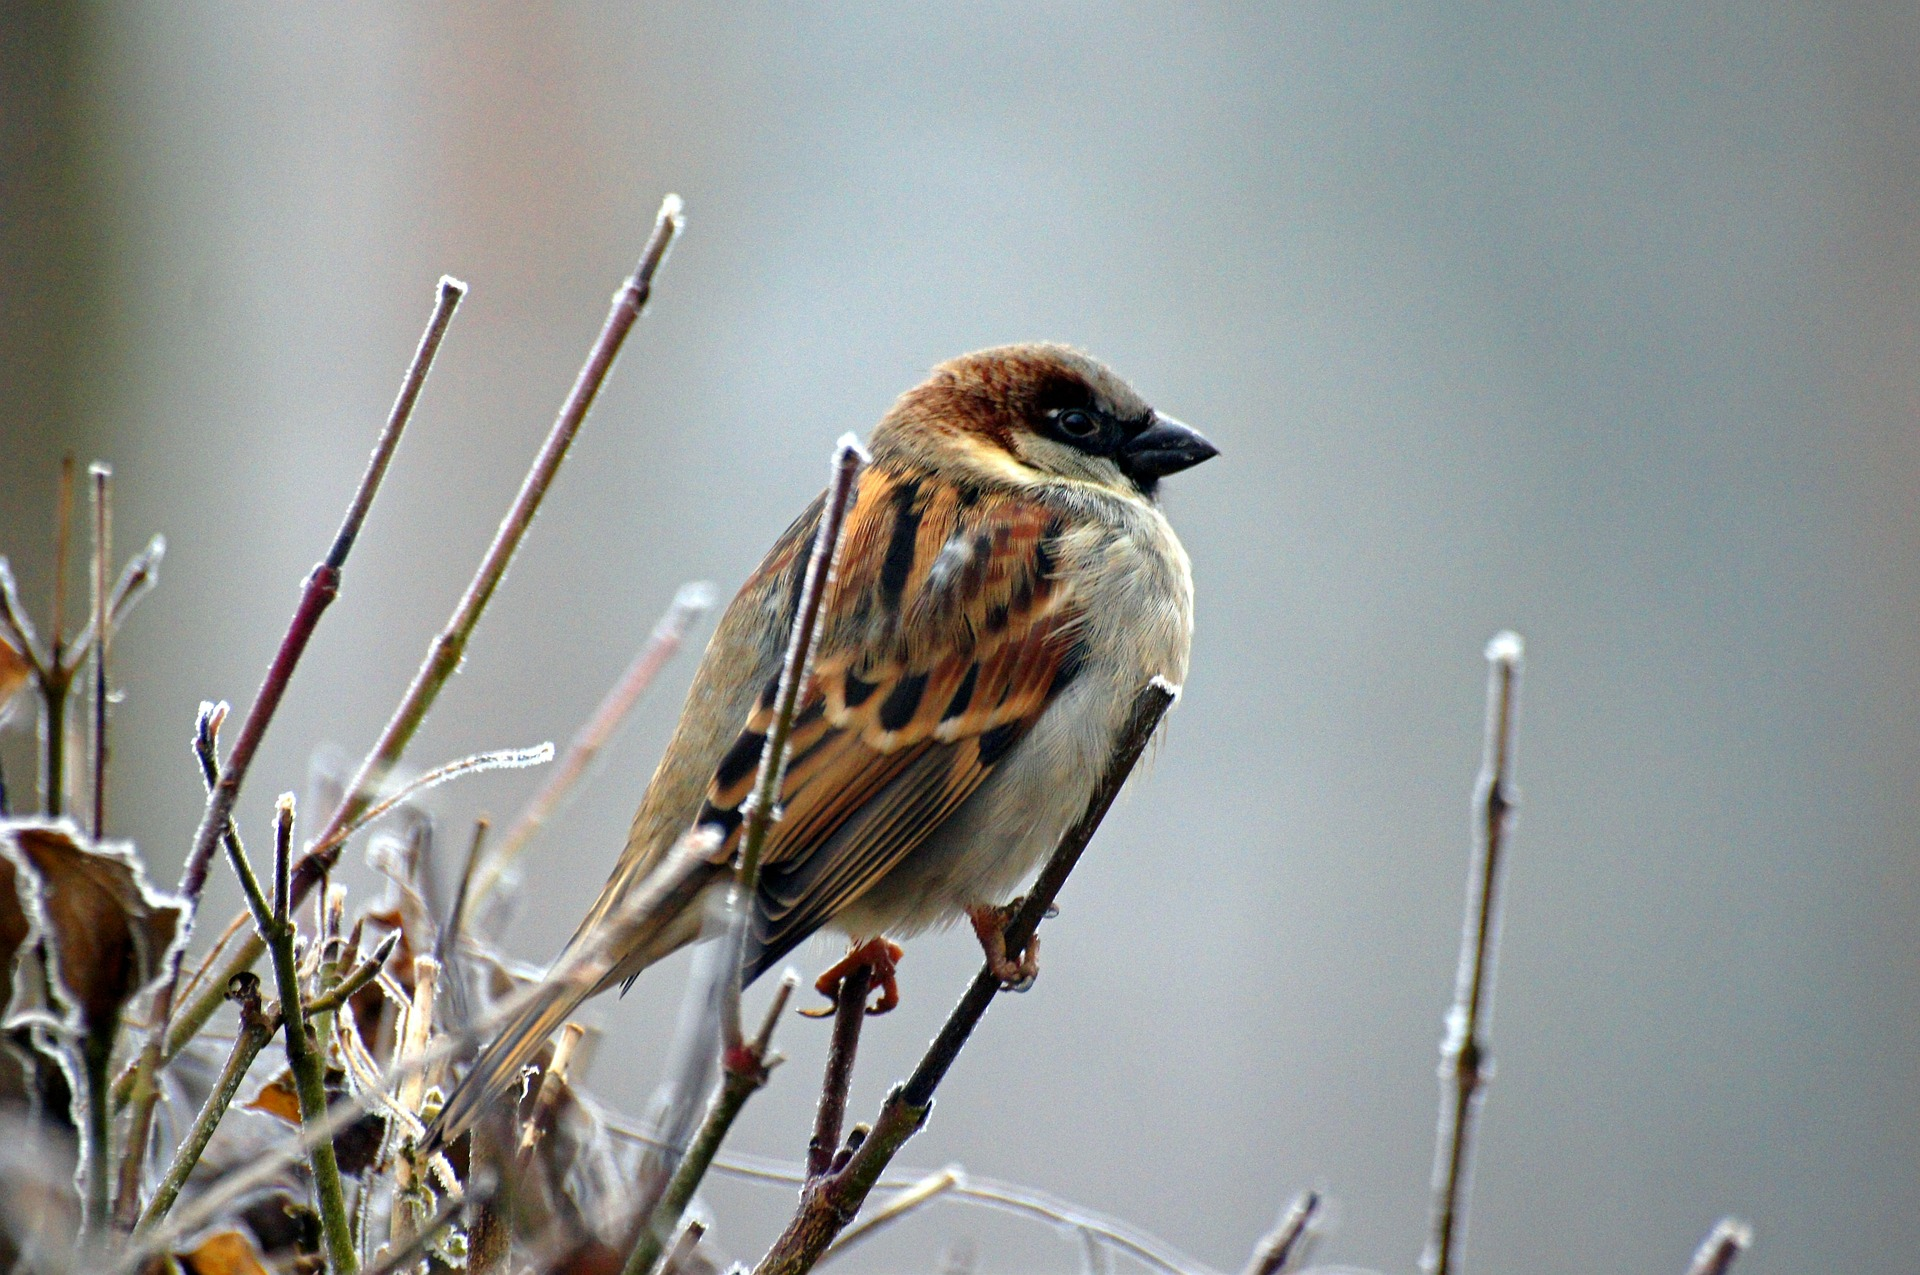 sparrow-50346_1920 Beauty of Nature Enhanced with Inspire